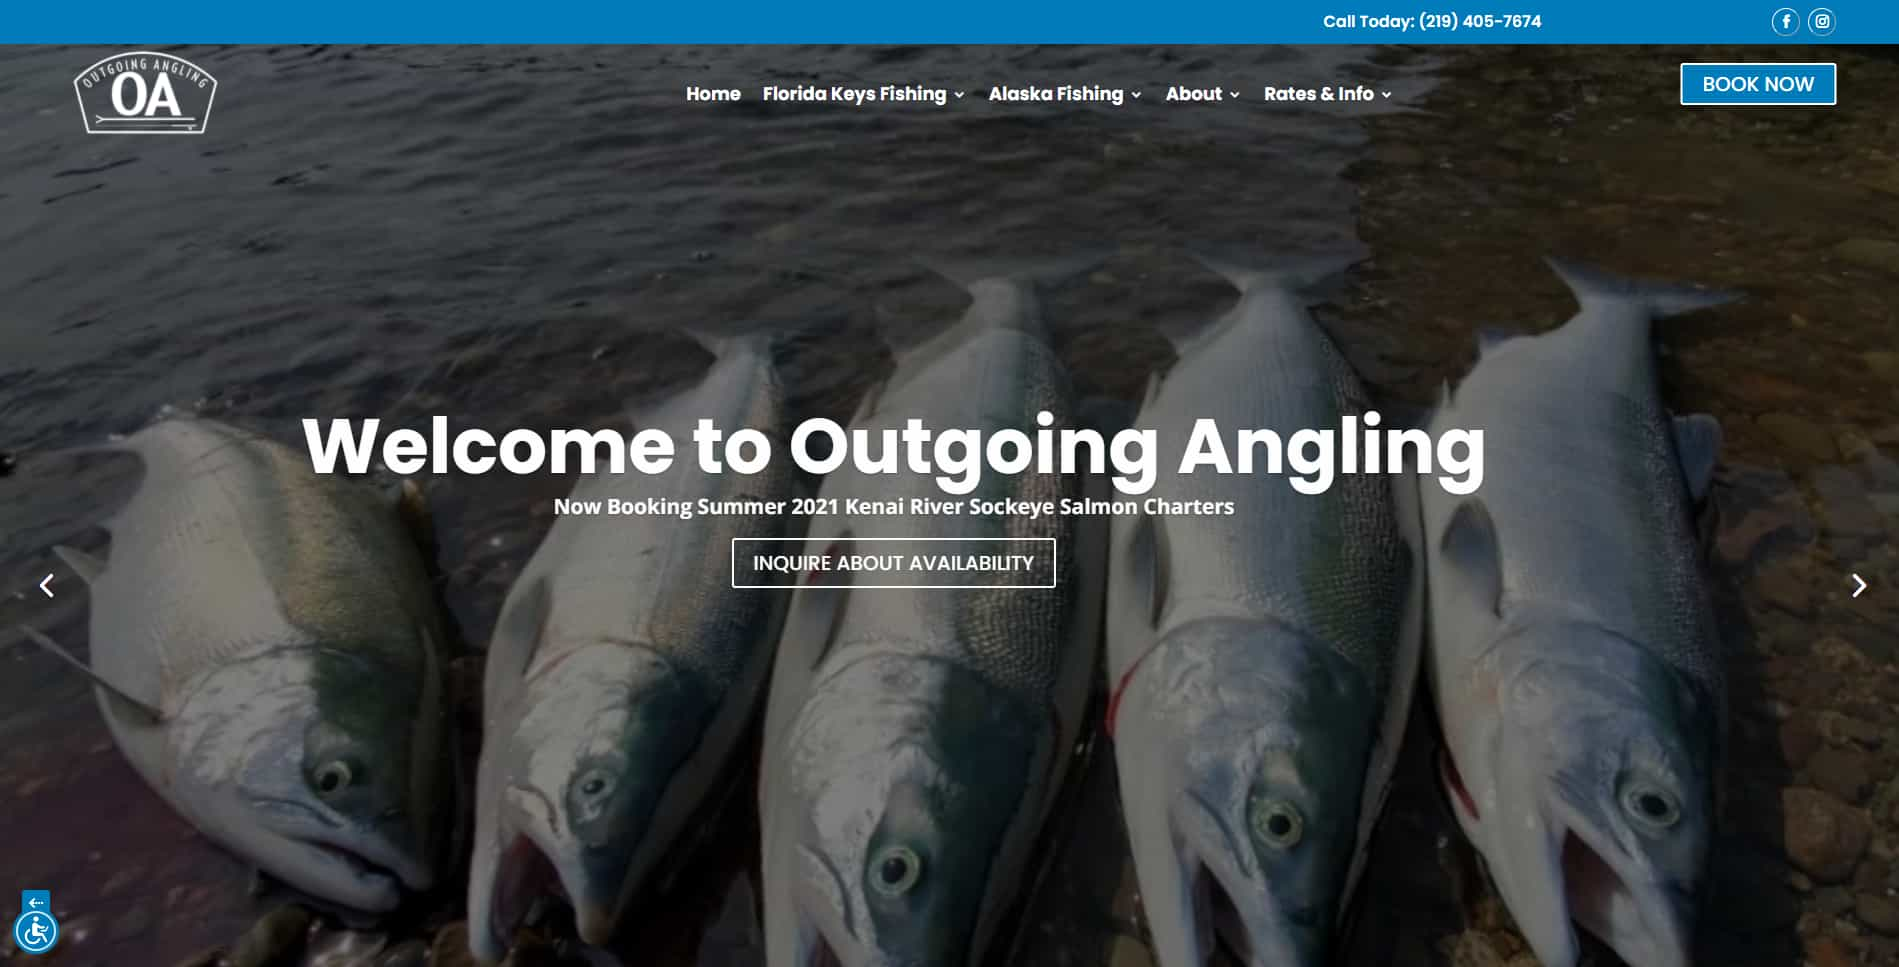 An image of the Outgoing Angling website built by Not Fade Away